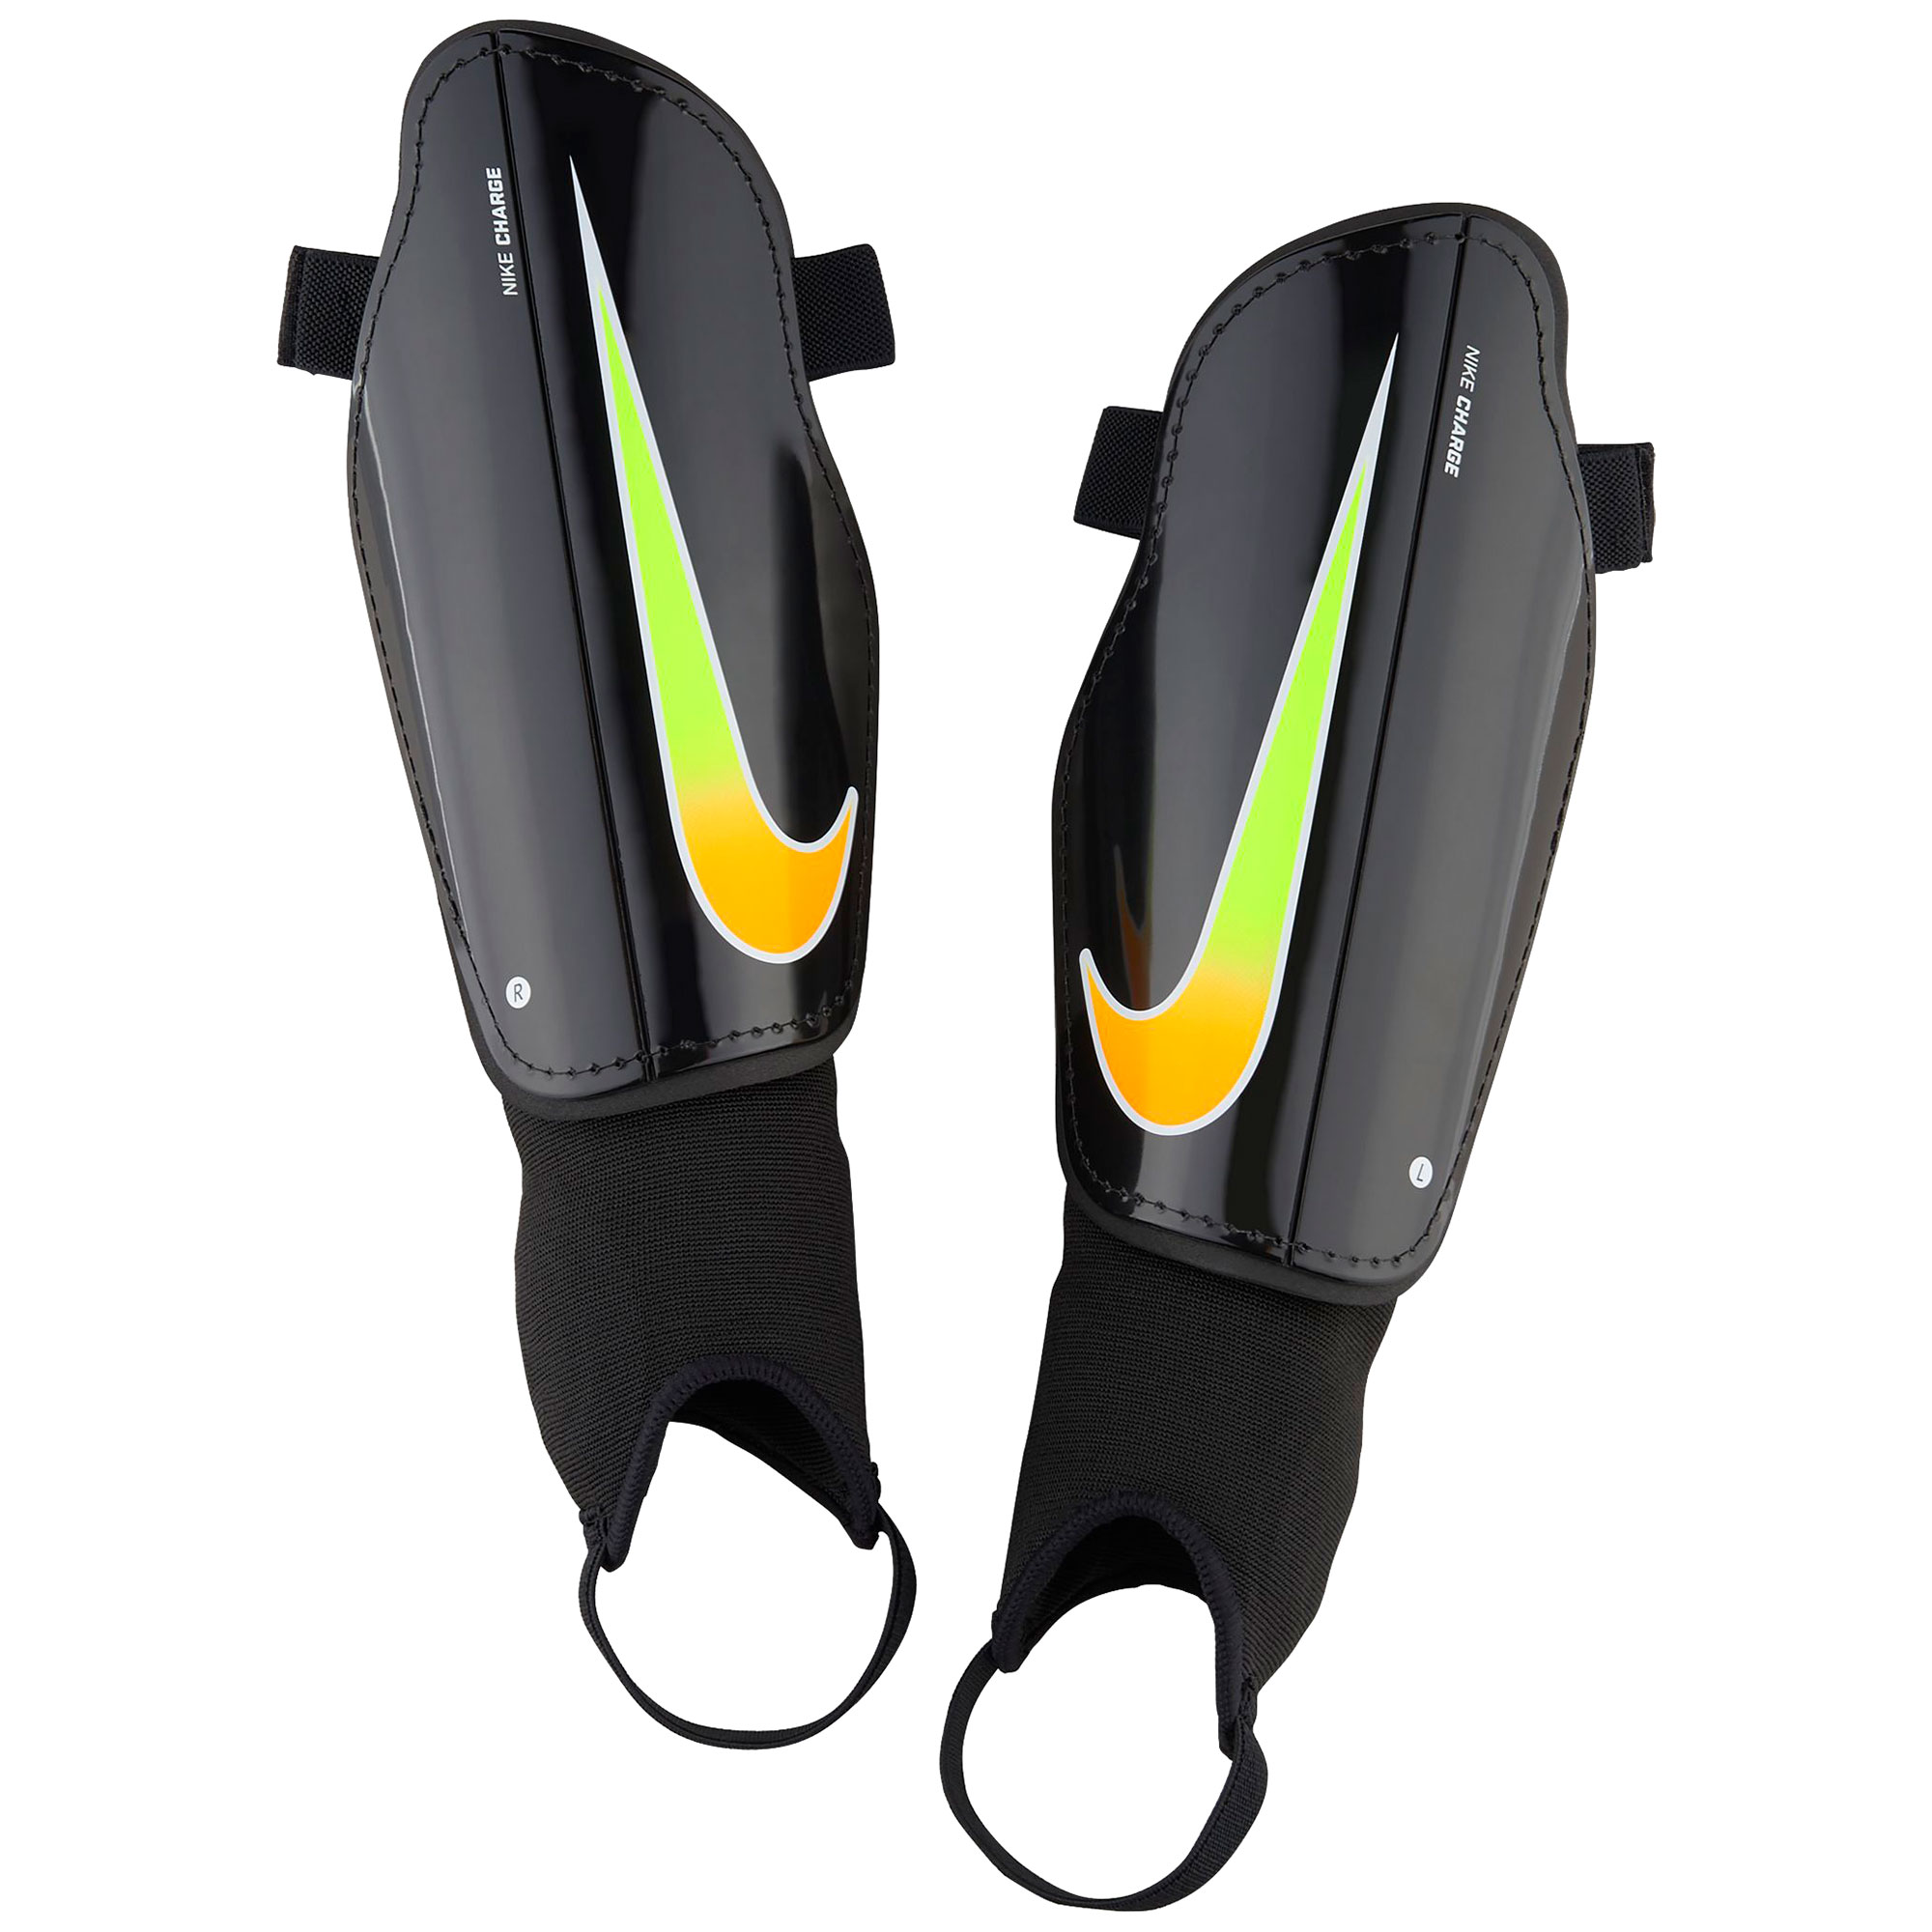 Nike Charge Football Shinguards - Black/Laser Orange